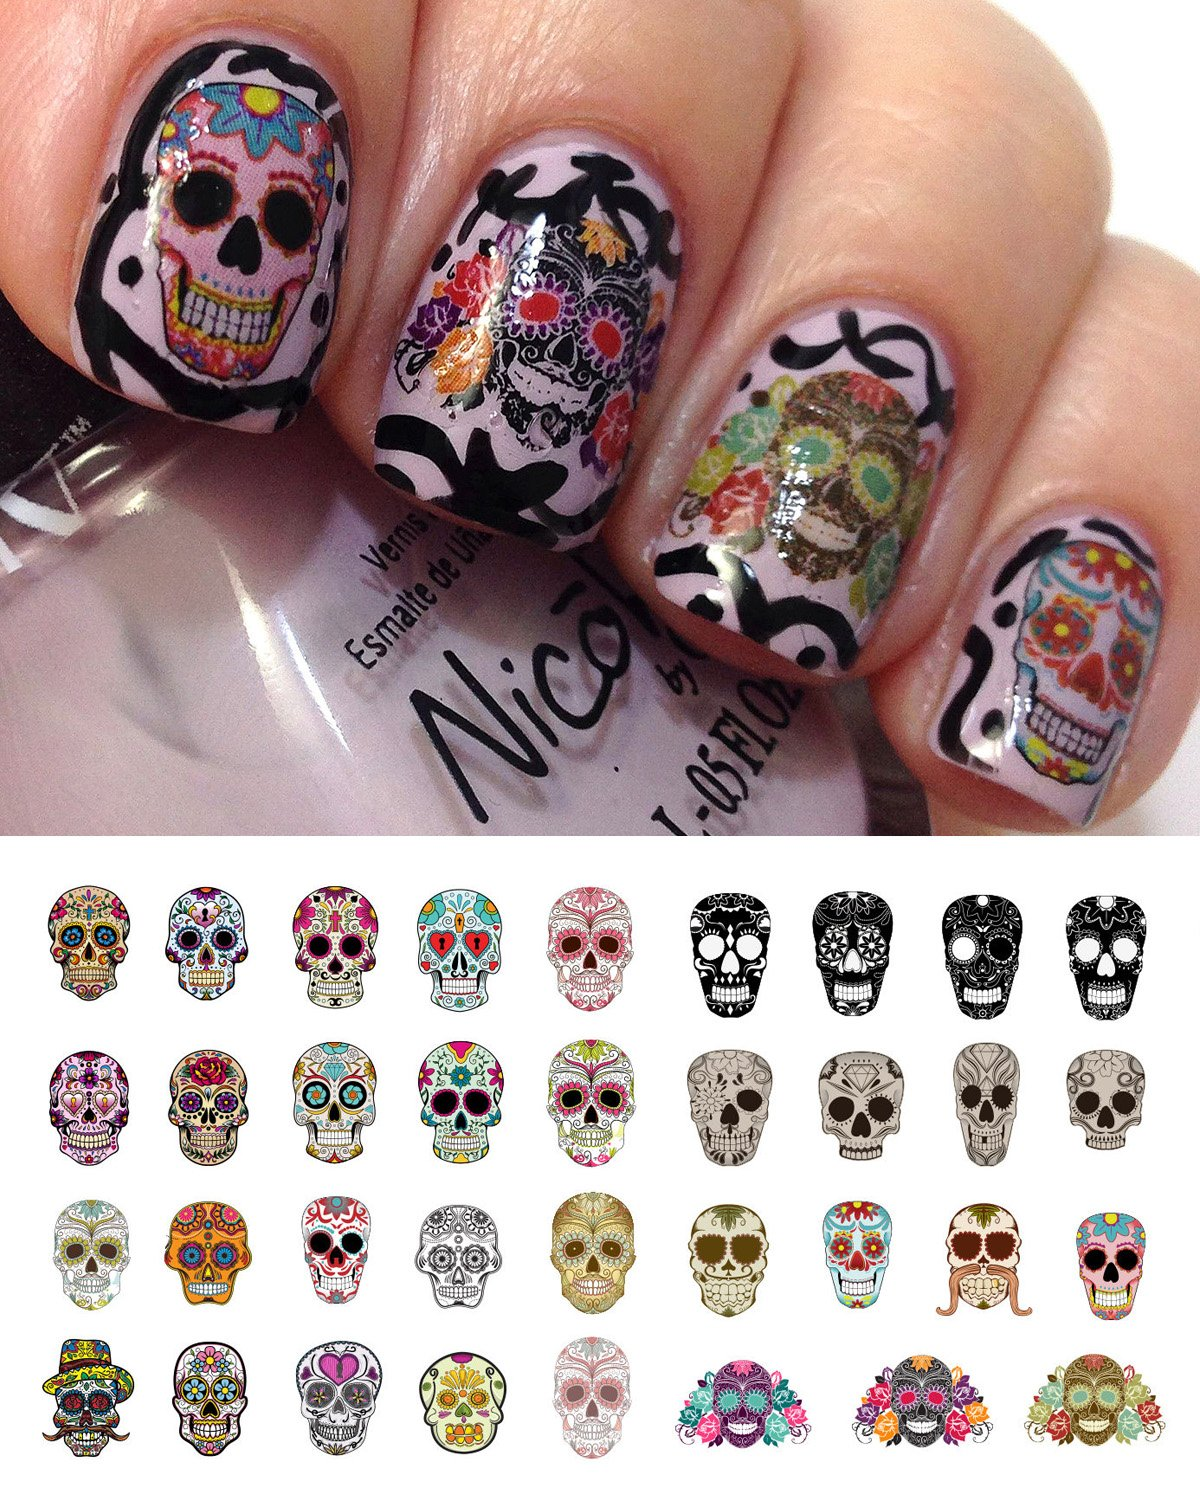 Amazon.com: Sugar Skull Nail Decals Assortment #1 Water Slide Nail ...